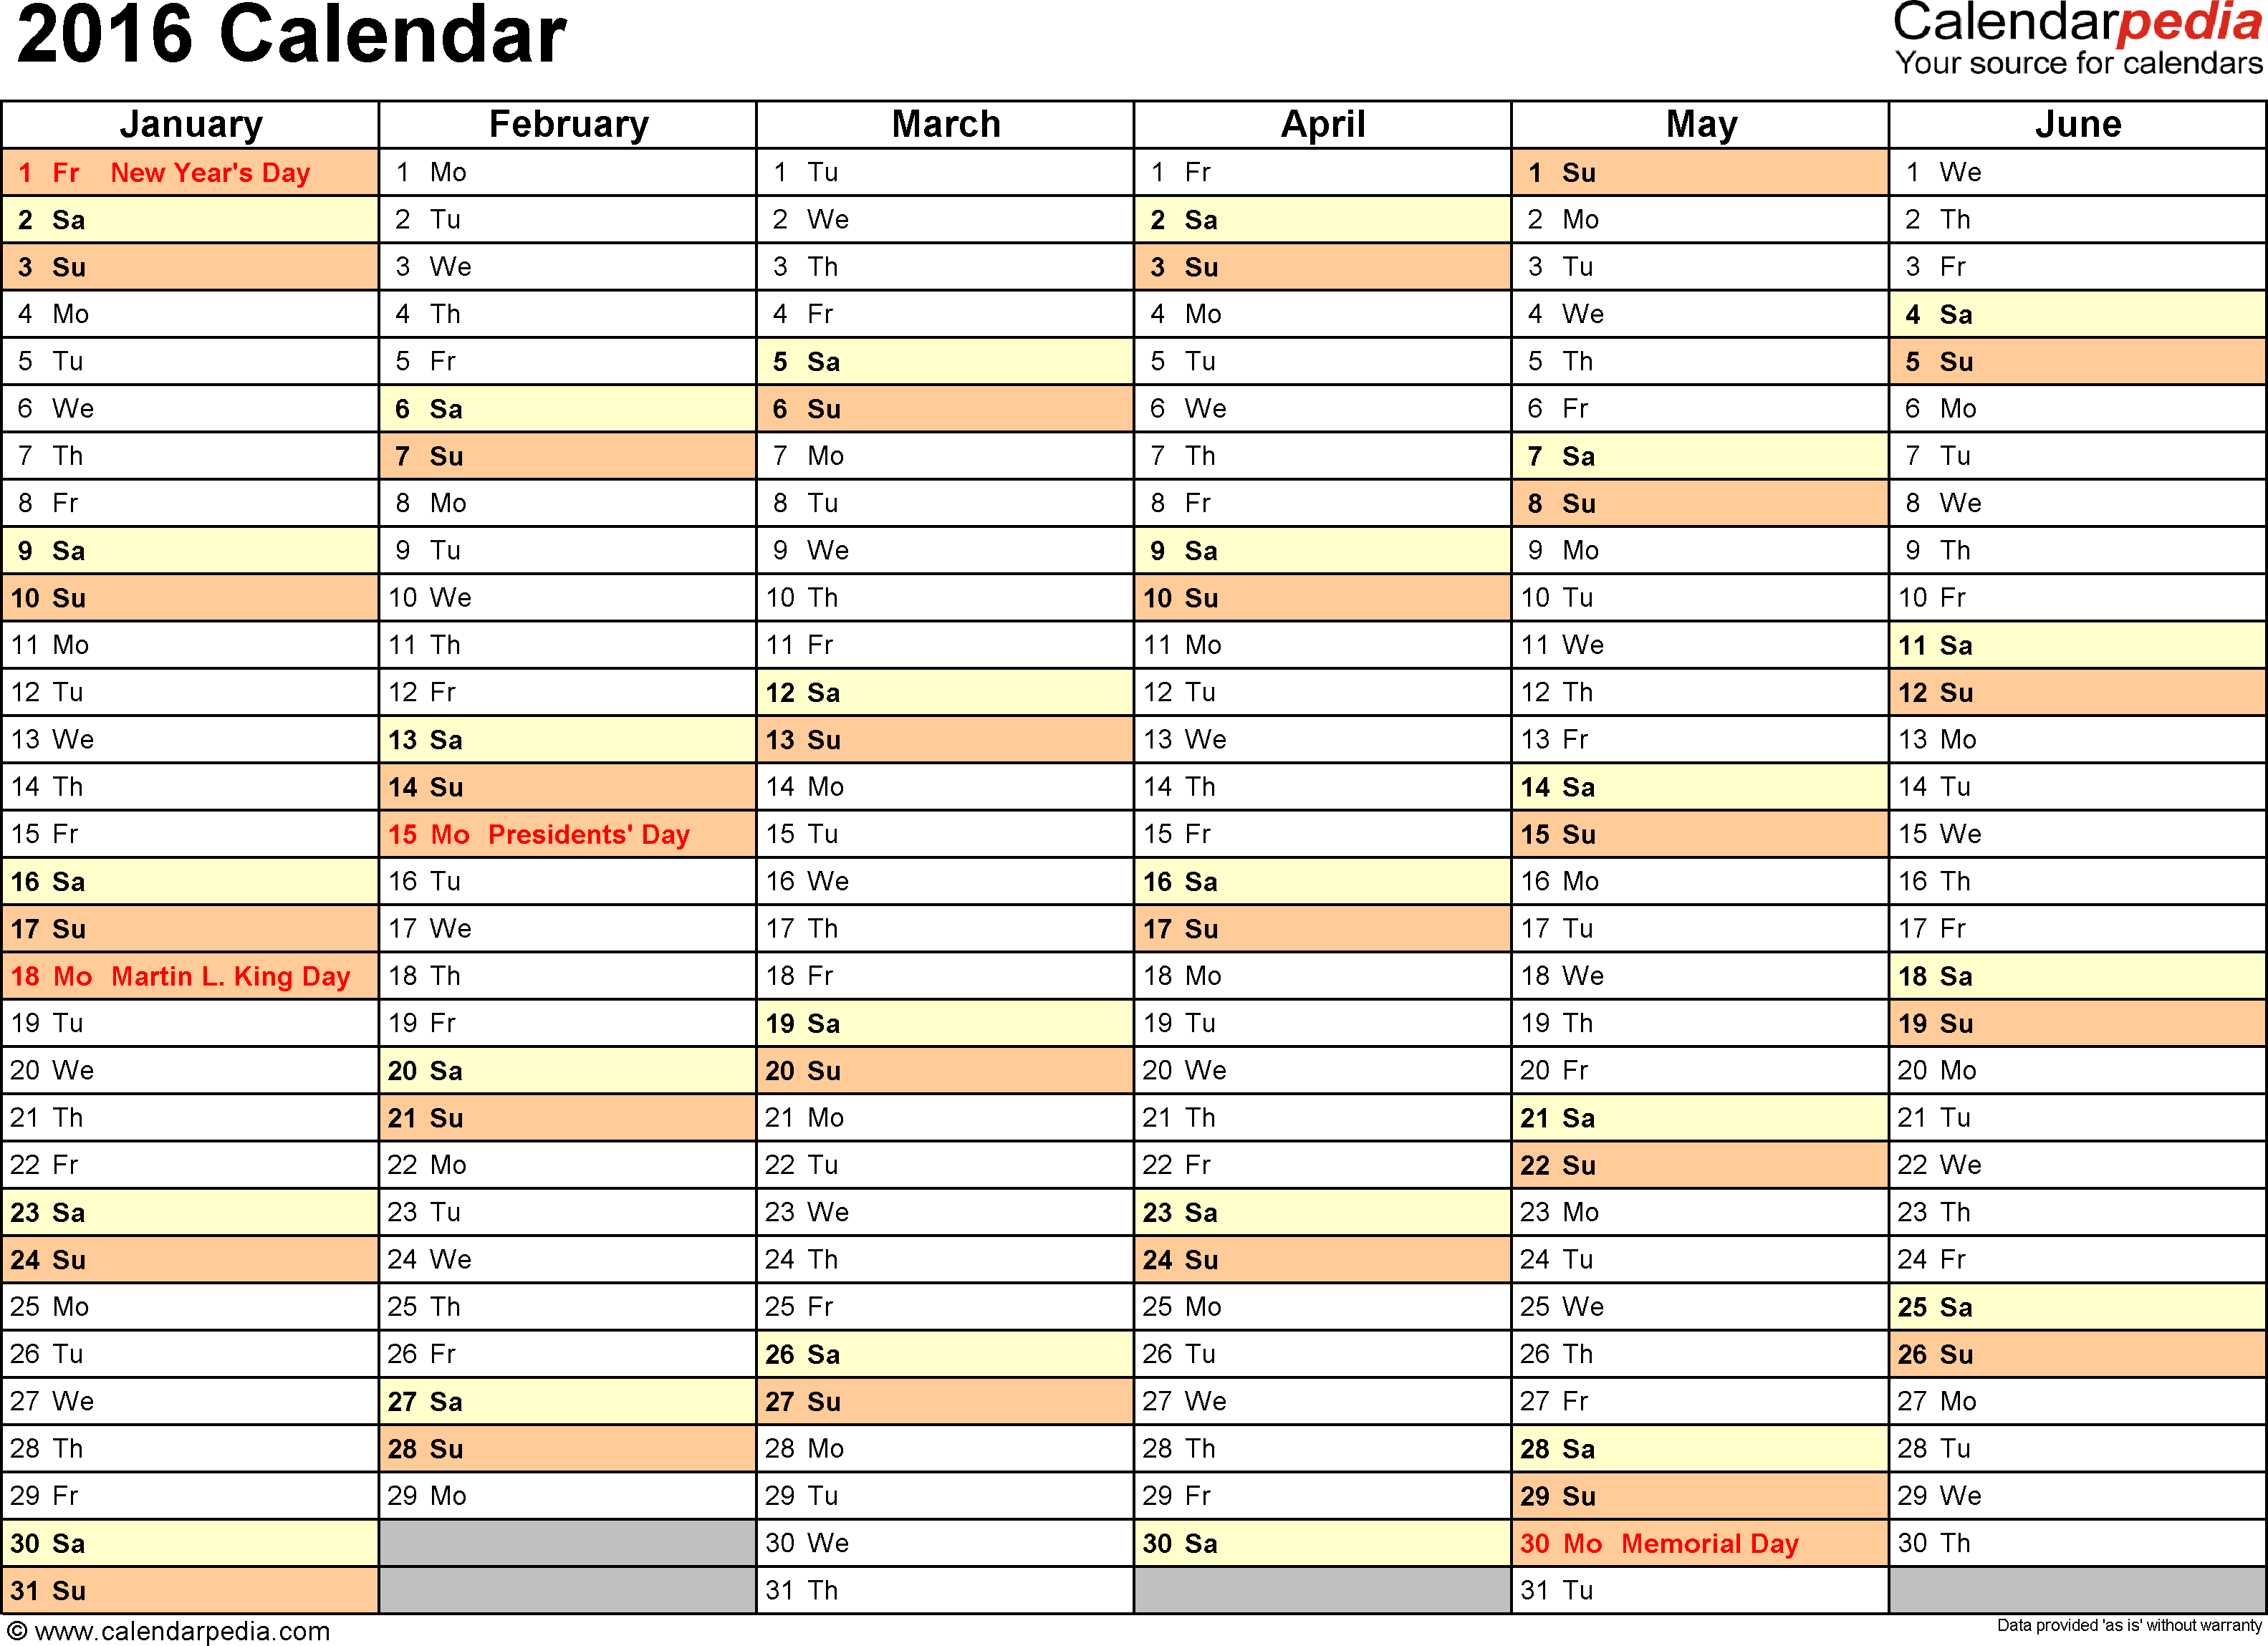 Ediblewildsus  Unique  Calendar  Download  Free Printable Excel Templates Xls With Exquisite Template   Calendar For Excel Months Horizontally  Pages Landscape Orientation With Astounding Square Root Symbol Excel Also How To Freeze Rows Excel In Addition Right Formula In Excel And Vlookup Excel  Example As Well As Integrating In Excel Additionally Excel Formula To Calculate Days Between Dates From Calendarpediacom With Ediblewildsus  Exquisite  Calendar  Download  Free Printable Excel Templates Xls With Astounding Template   Calendar For Excel Months Horizontally  Pages Landscape Orientation And Unique Square Root Symbol Excel Also How To Freeze Rows Excel In Addition Right Formula In Excel From Calendarpediacom